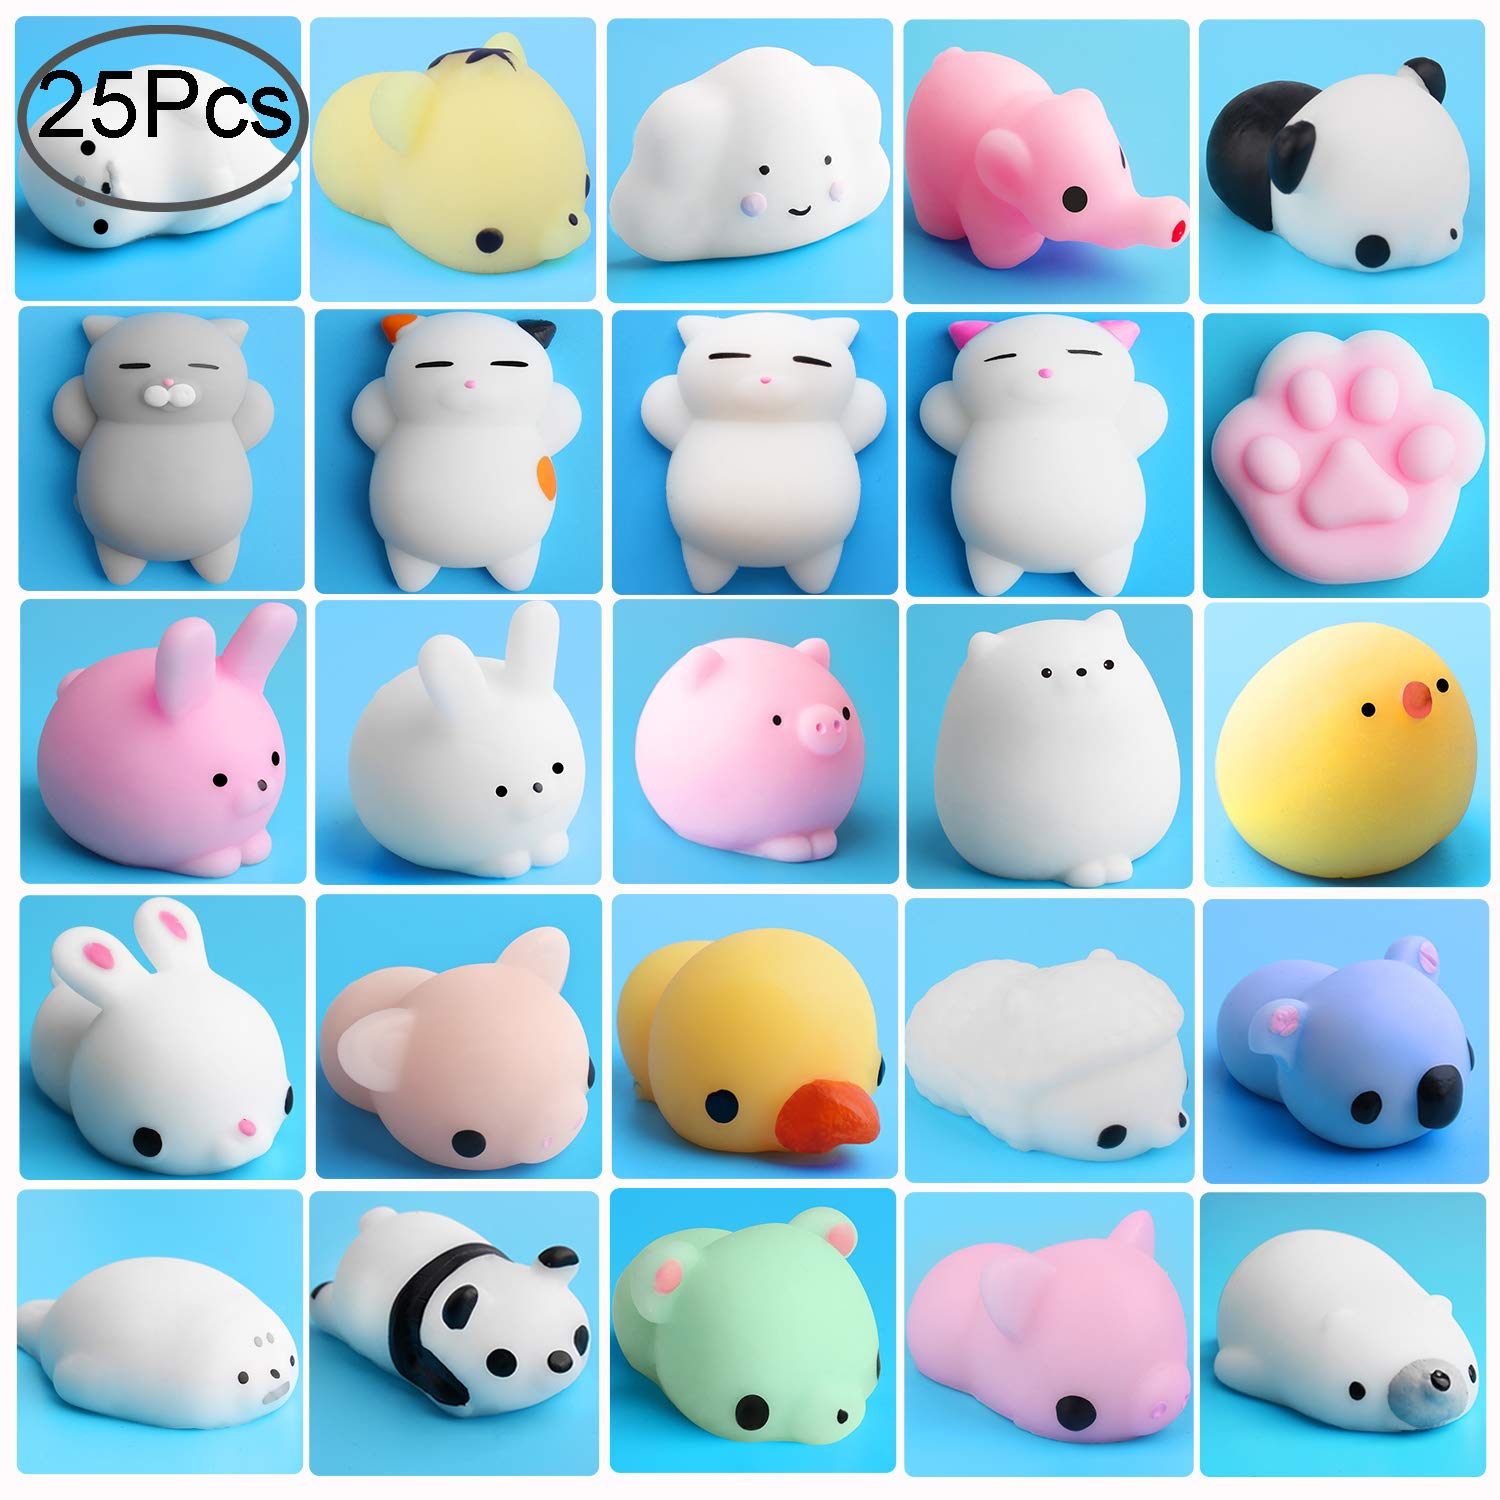 Image of: Background Colorful Outee 25 Pcs Mochi Squishy Animals Mini Squishies Kawaii Animal Toys Stress Relief Cat Squishy Mochi Squeeze Mini Squishies Seal Rabbit Chicken Duckling Amazoncom Amazoncom Outee 25 Pcs Mochi Squishy Animals Mini Squishies Kawaii